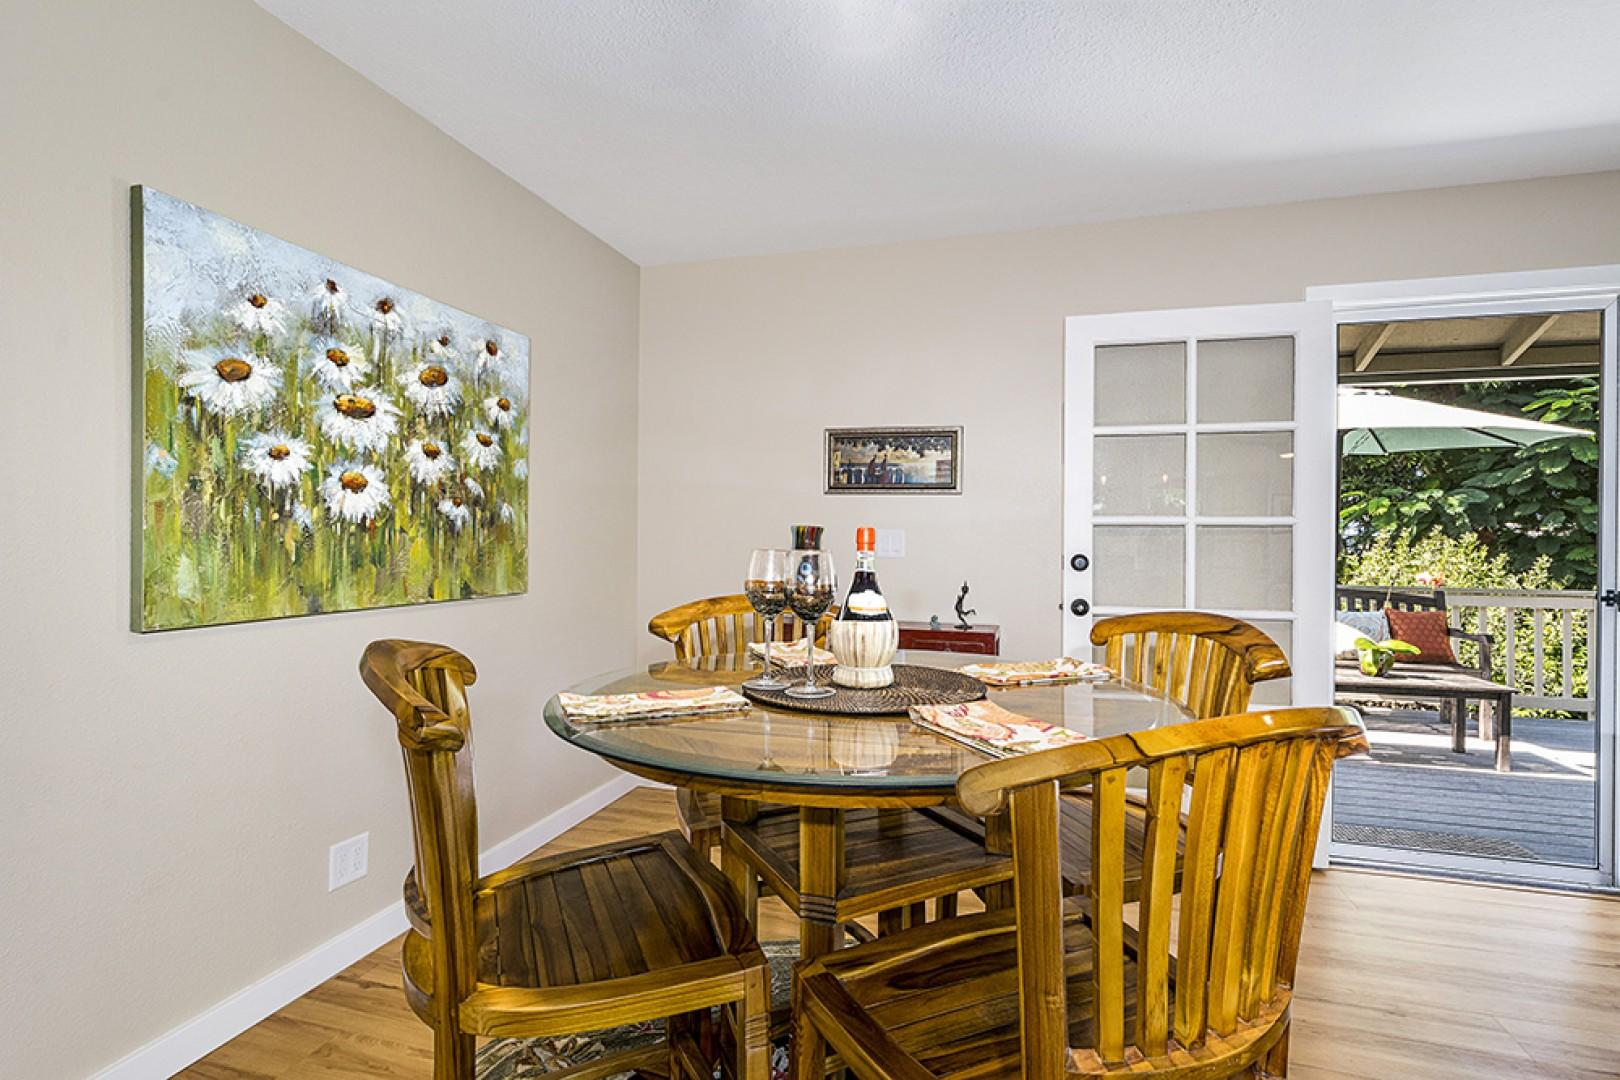 Indoor dining for 4 people